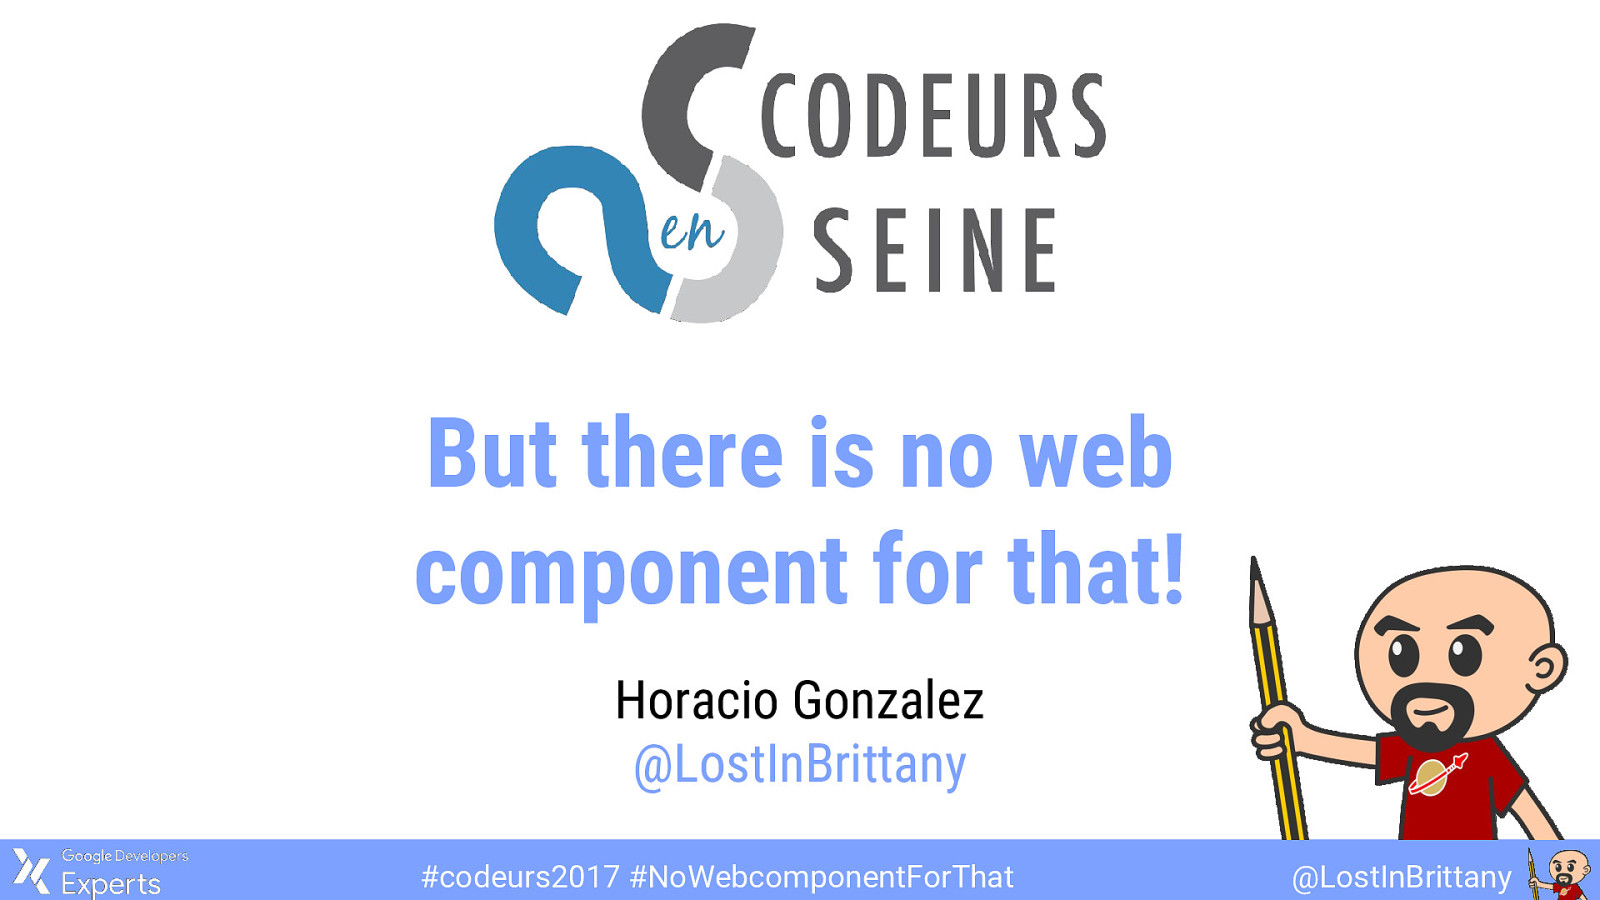 But there is no web component for that